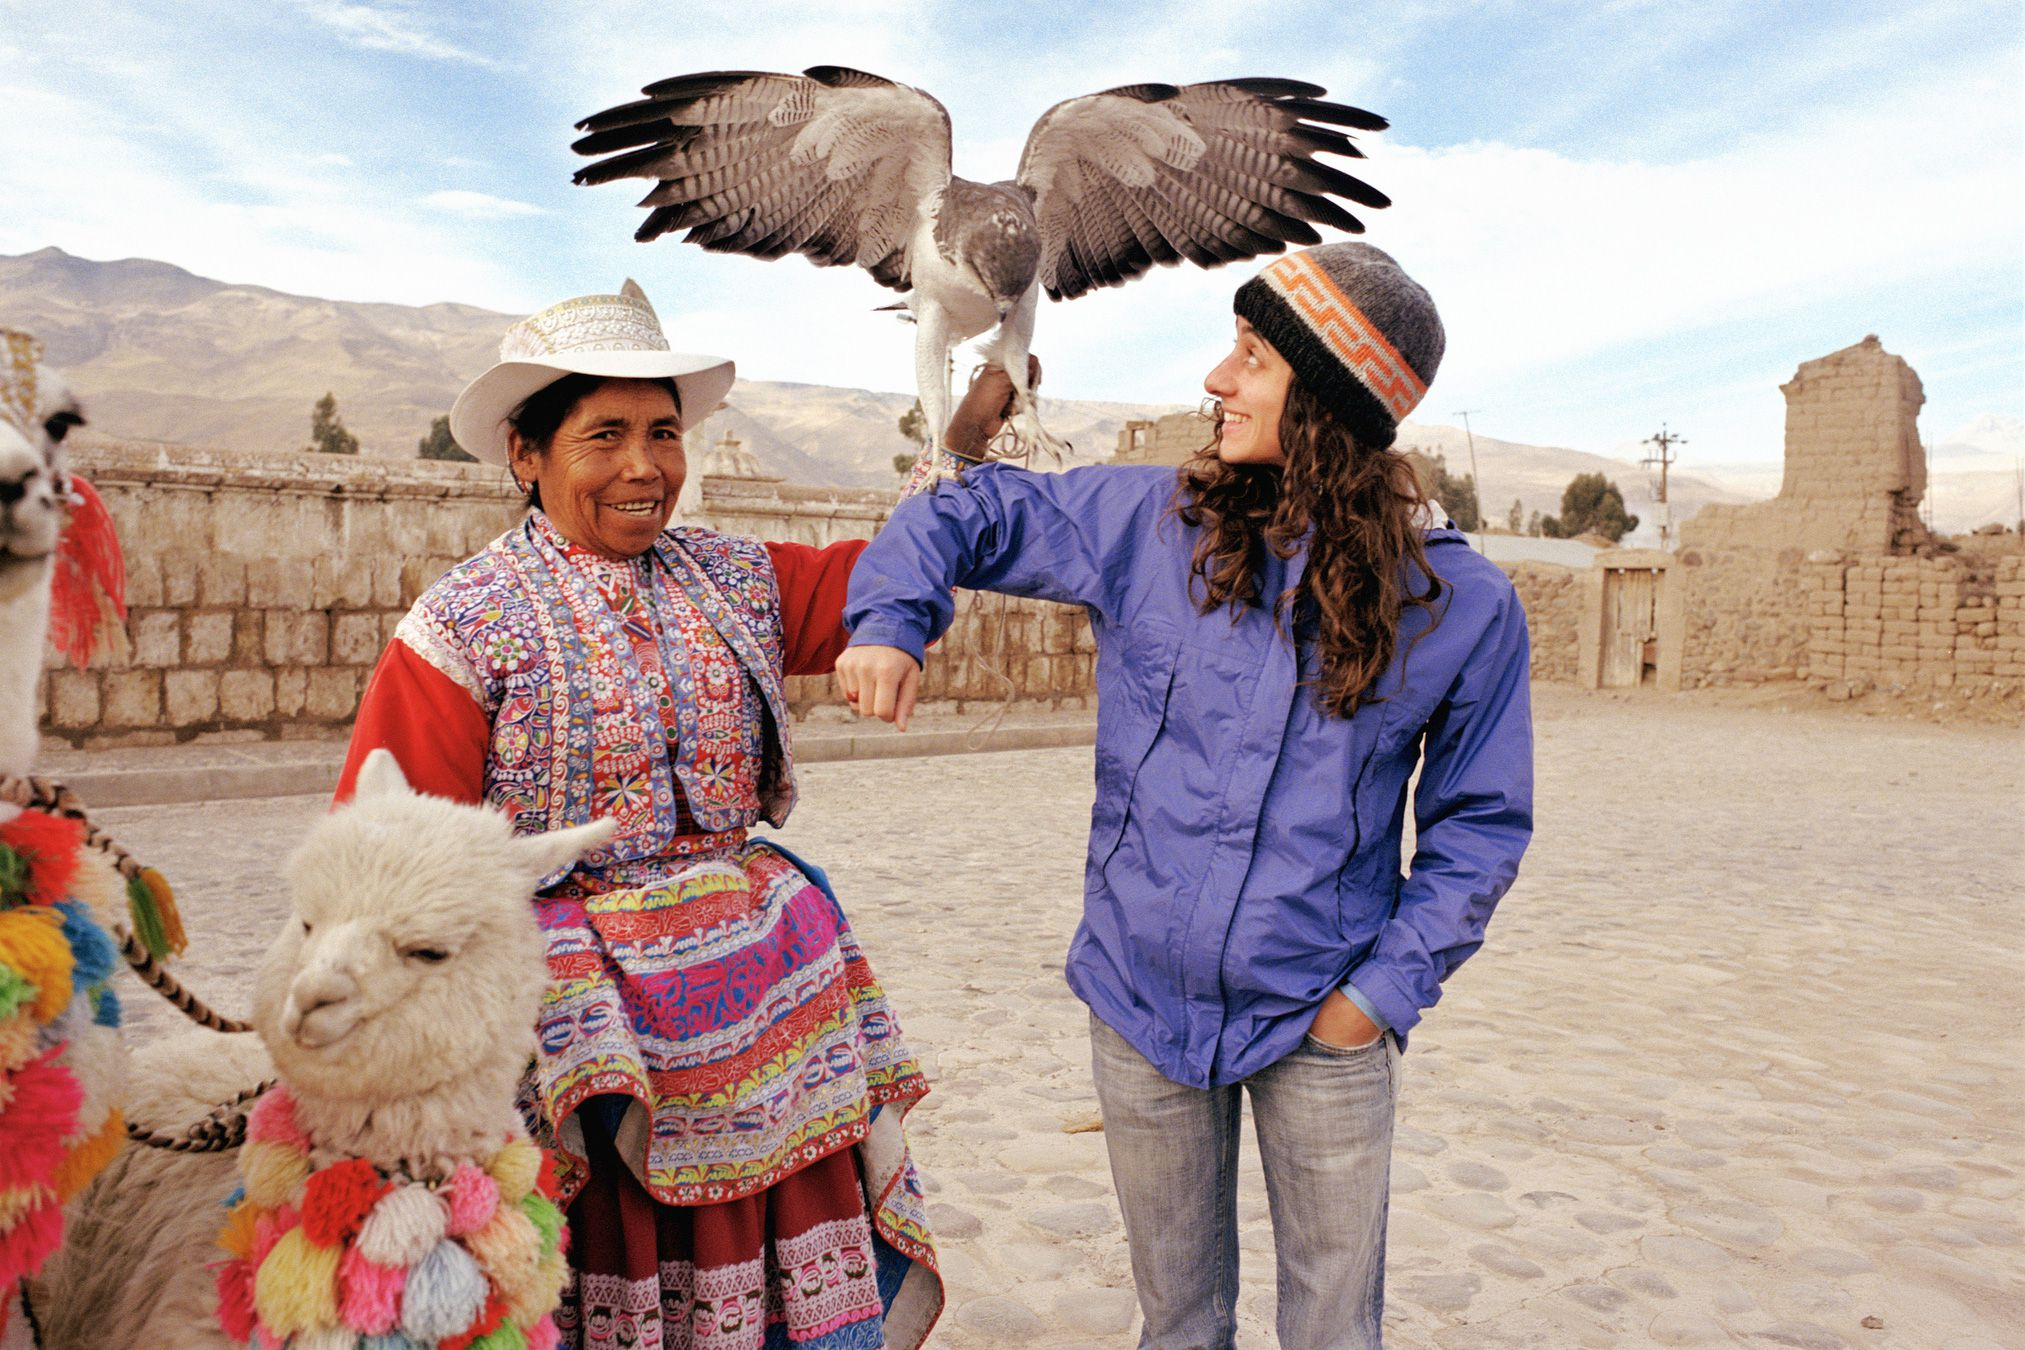 Cheap Auto Rentals >> 12 Things Not to Do in Peru